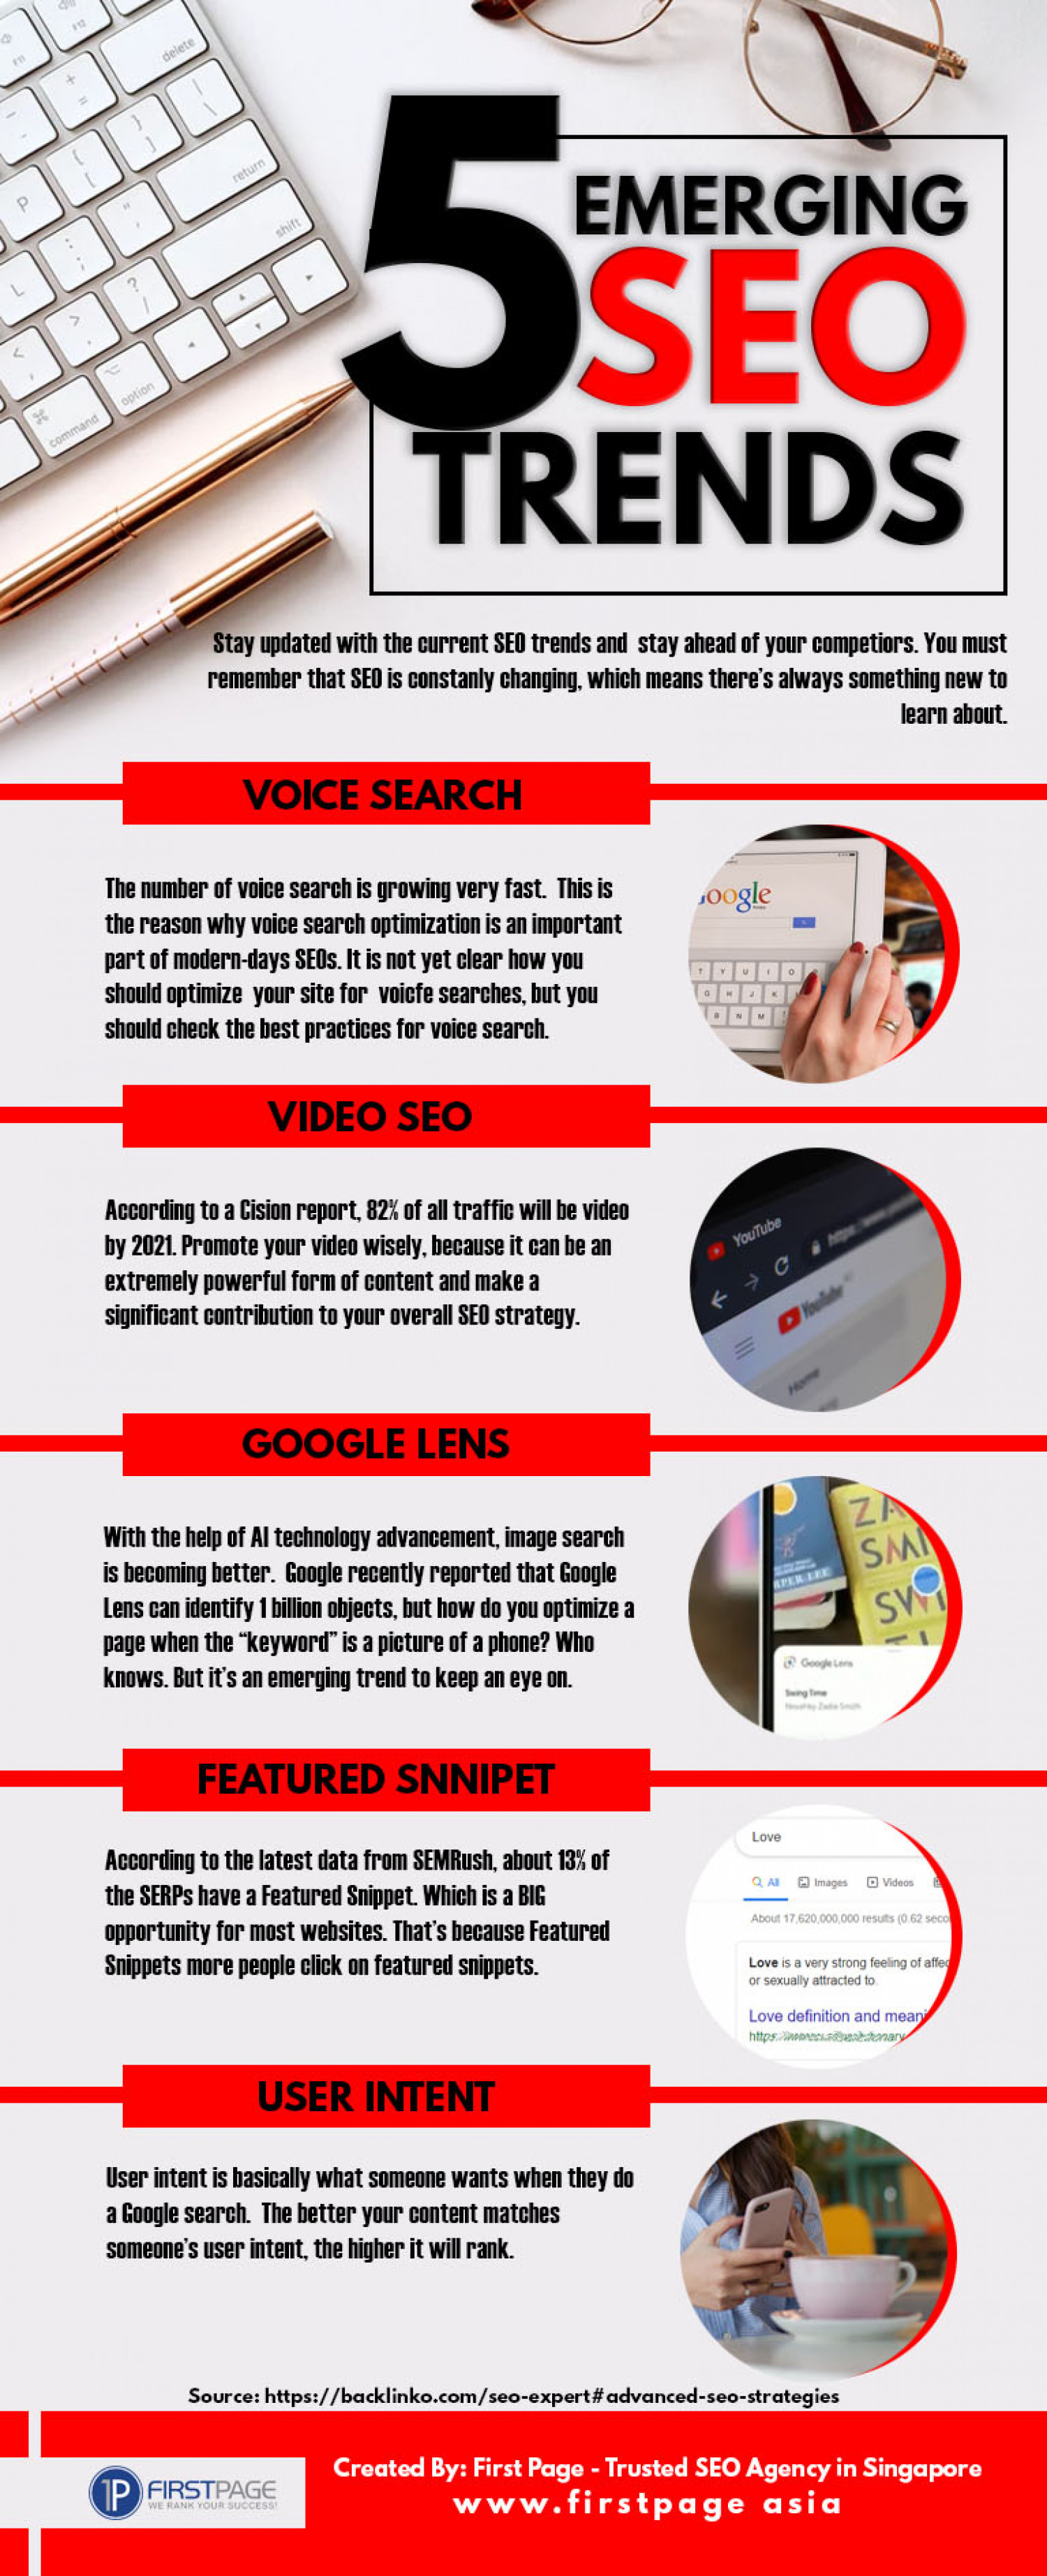 5 Emerging SEO Trends You Should Know Infographic